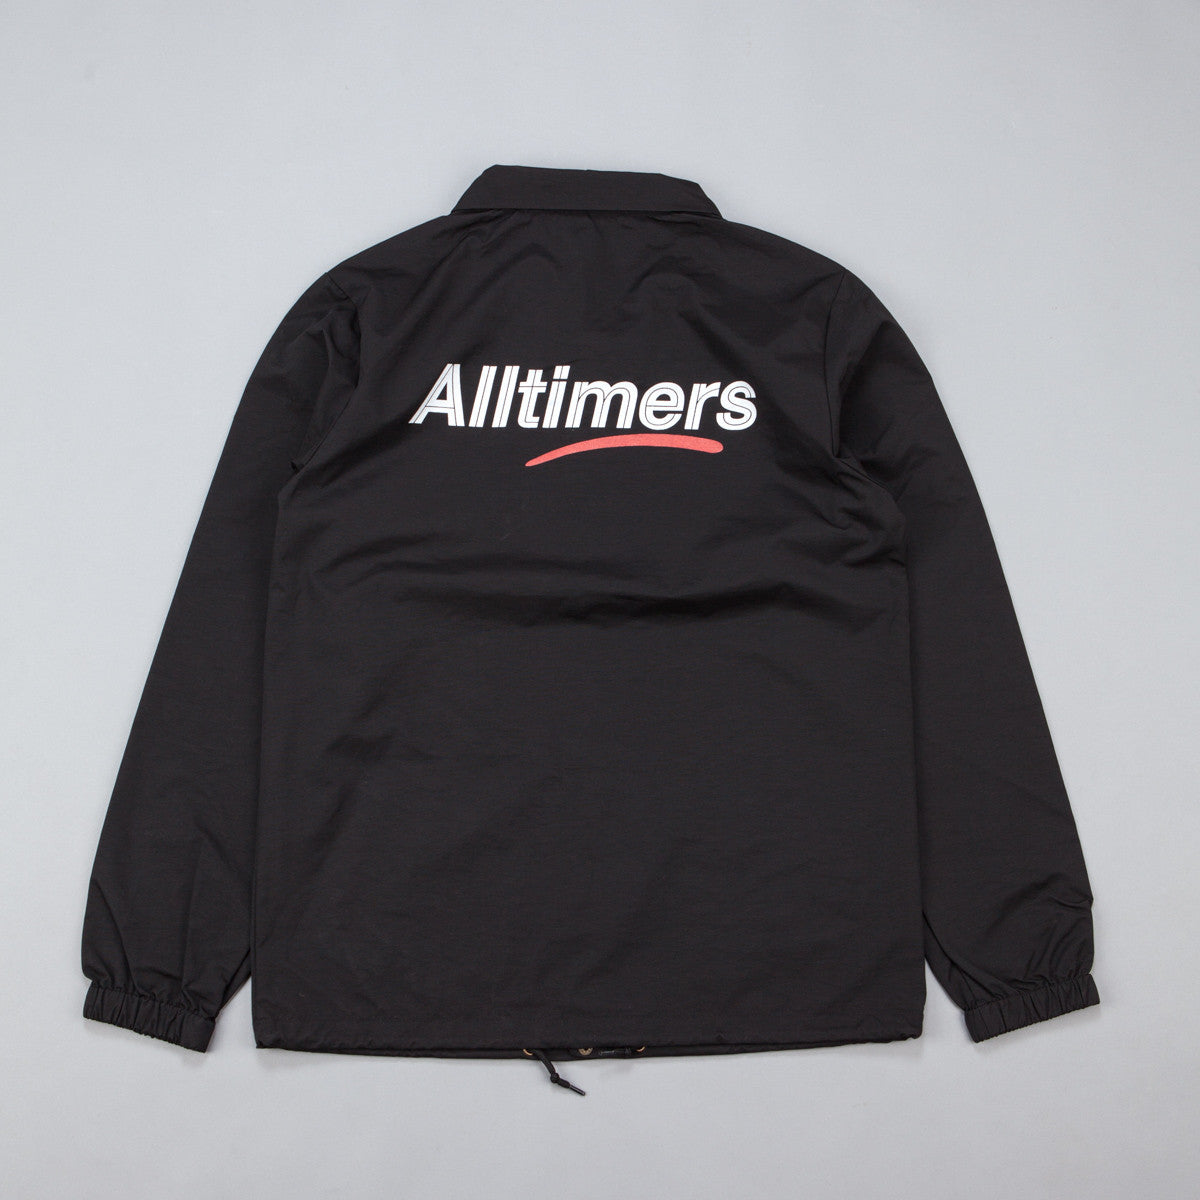 Alltimers Sears Coaches Jacket - Black